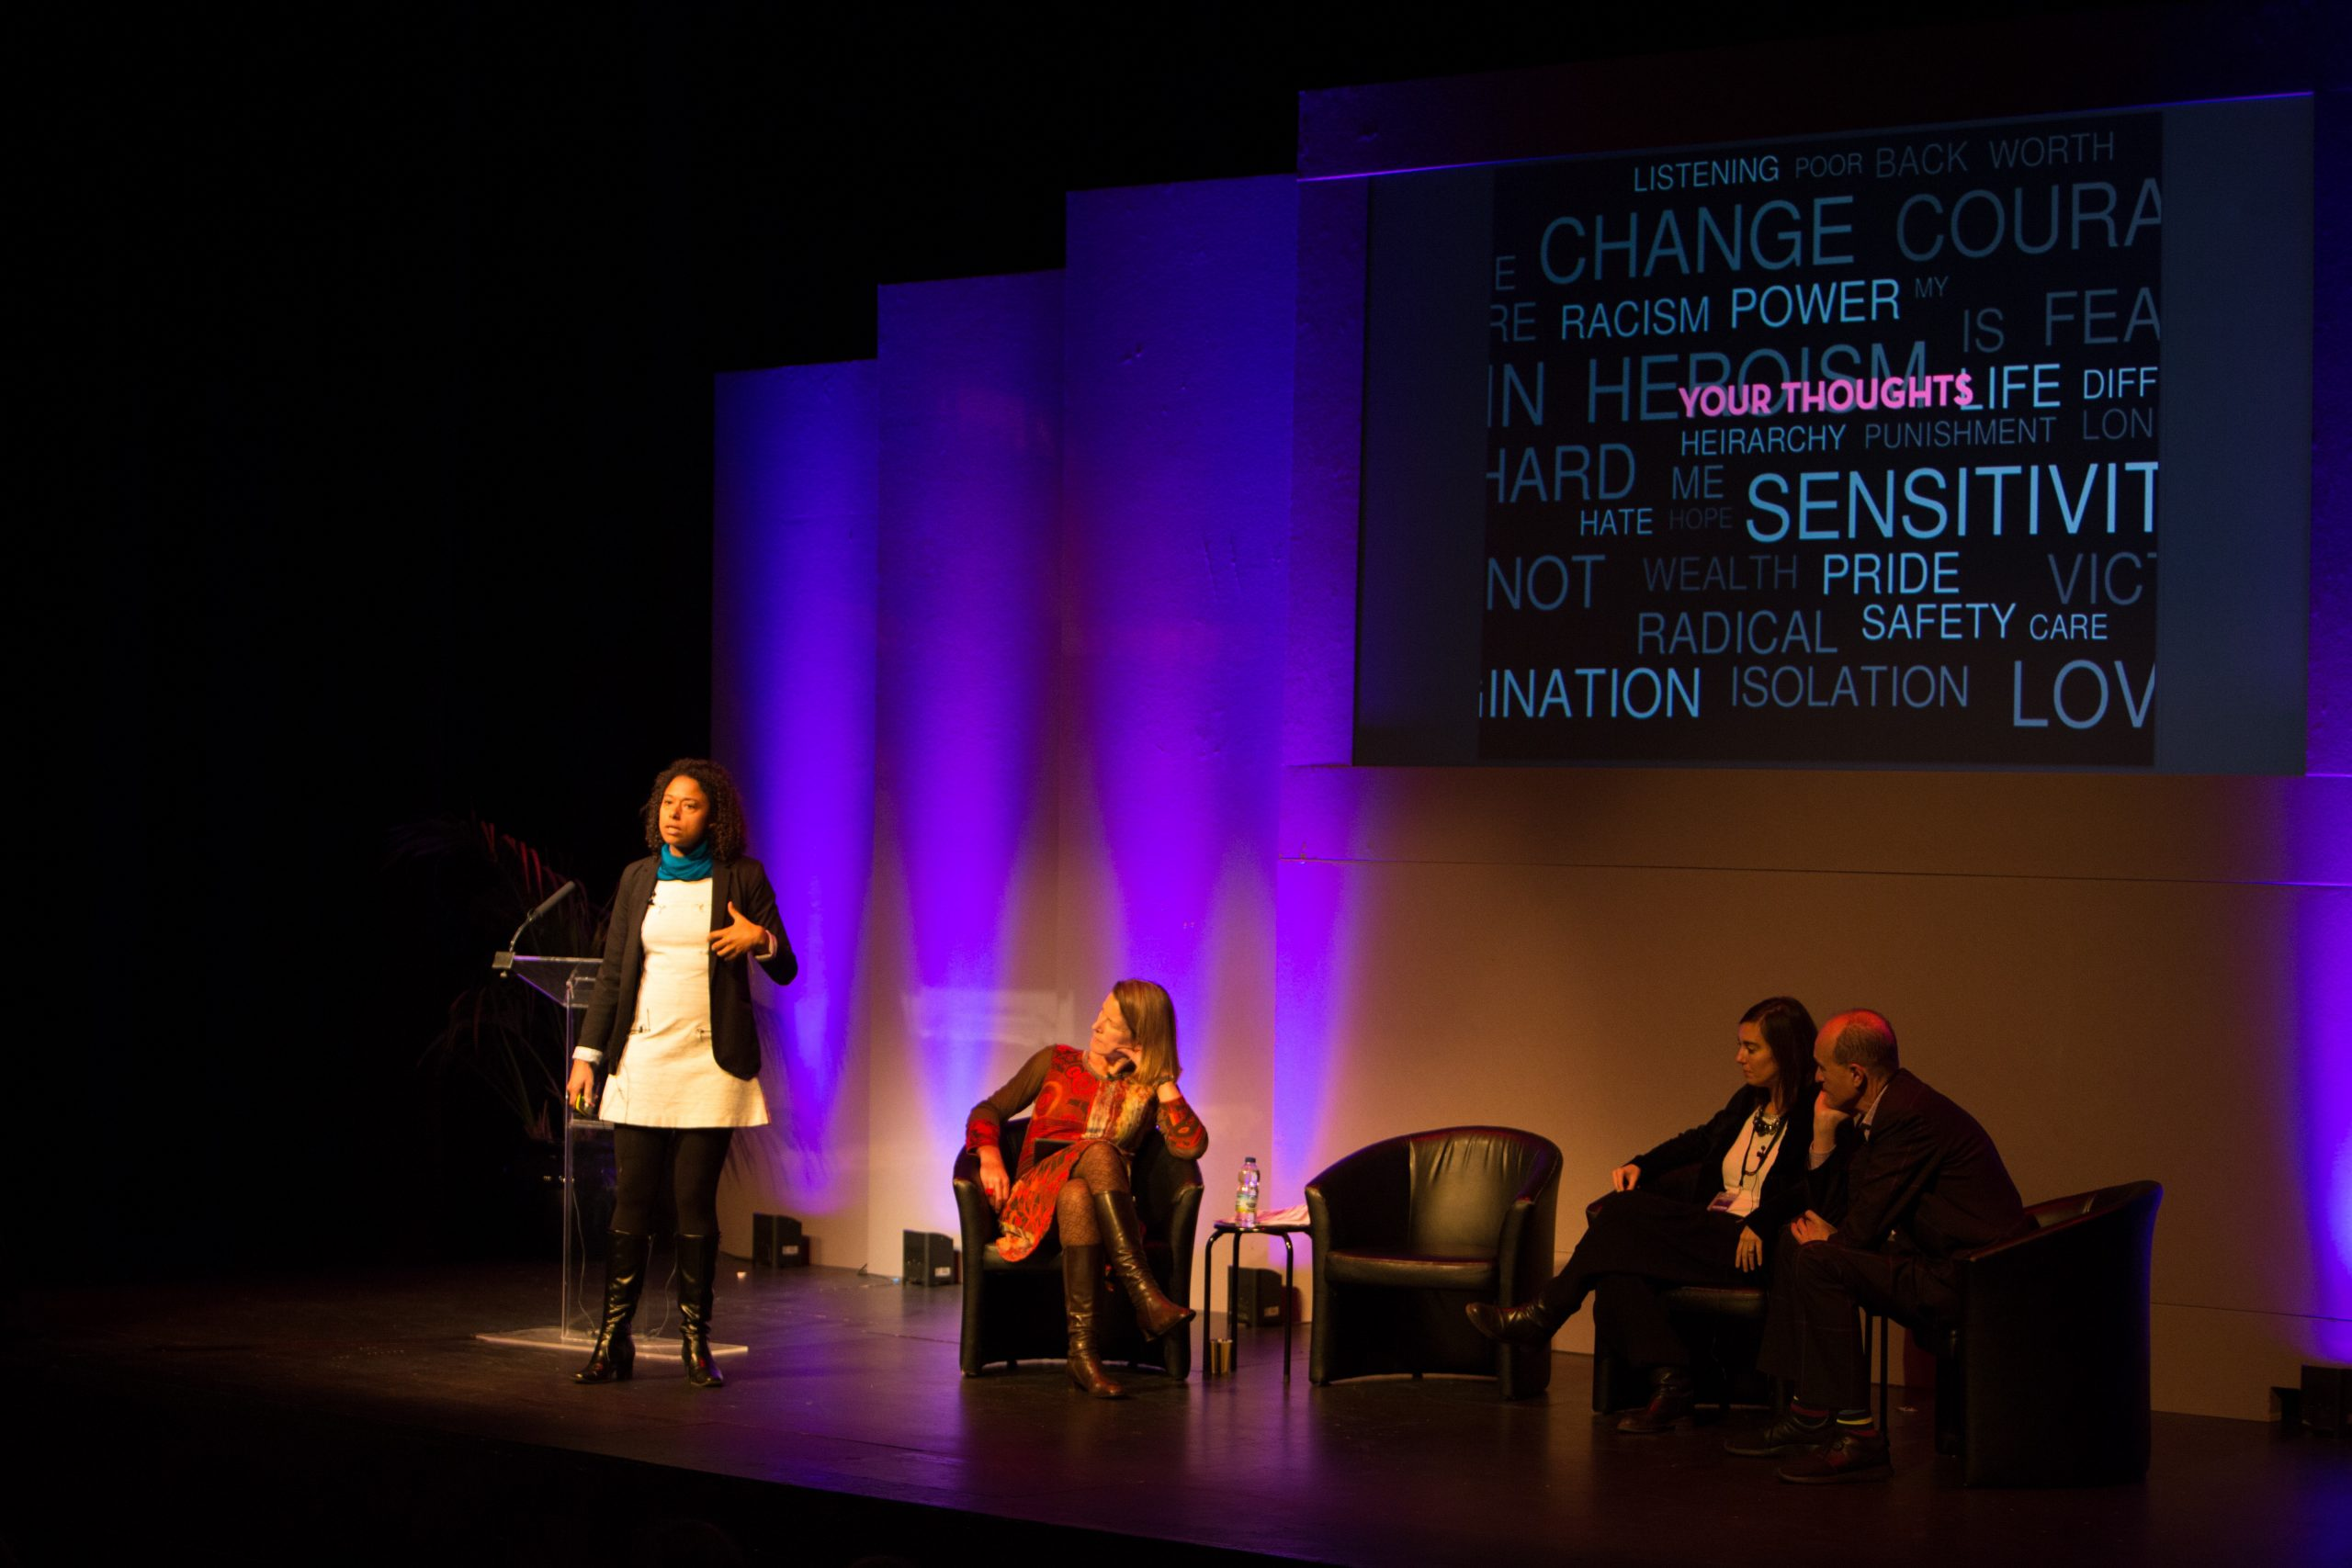 Deanna Van Buren on stage at the Lumiere Durham 2015 conference